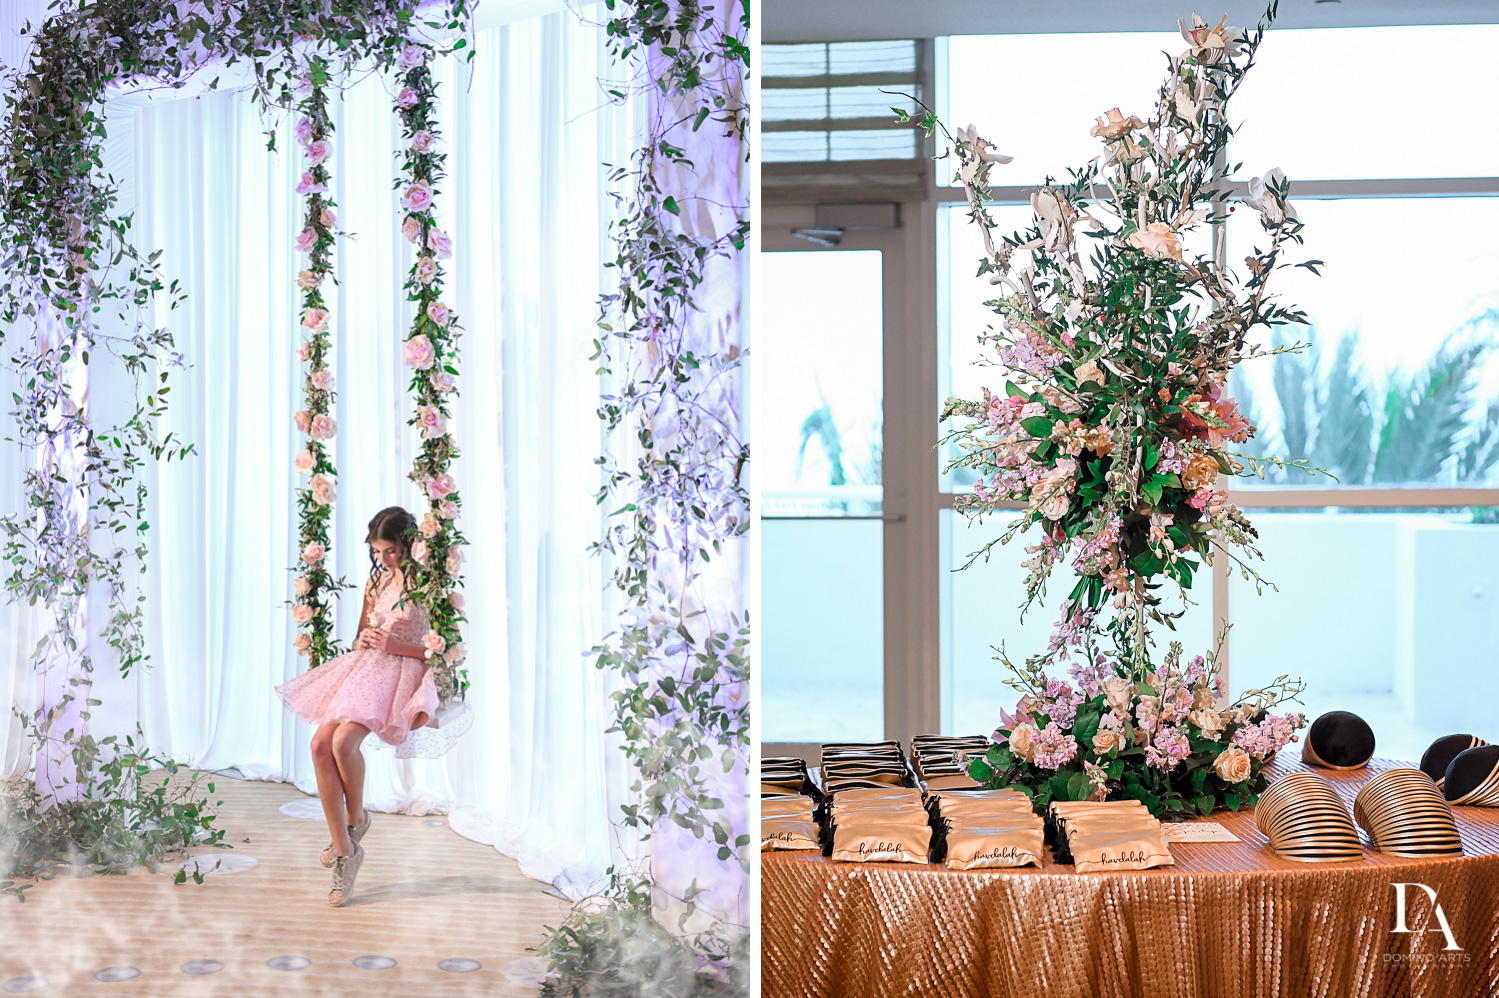 flower swing at Masquerade Ball Bat Mitzvah at Ritz Carlton Fort Lauderdale by Domino Arts Photography